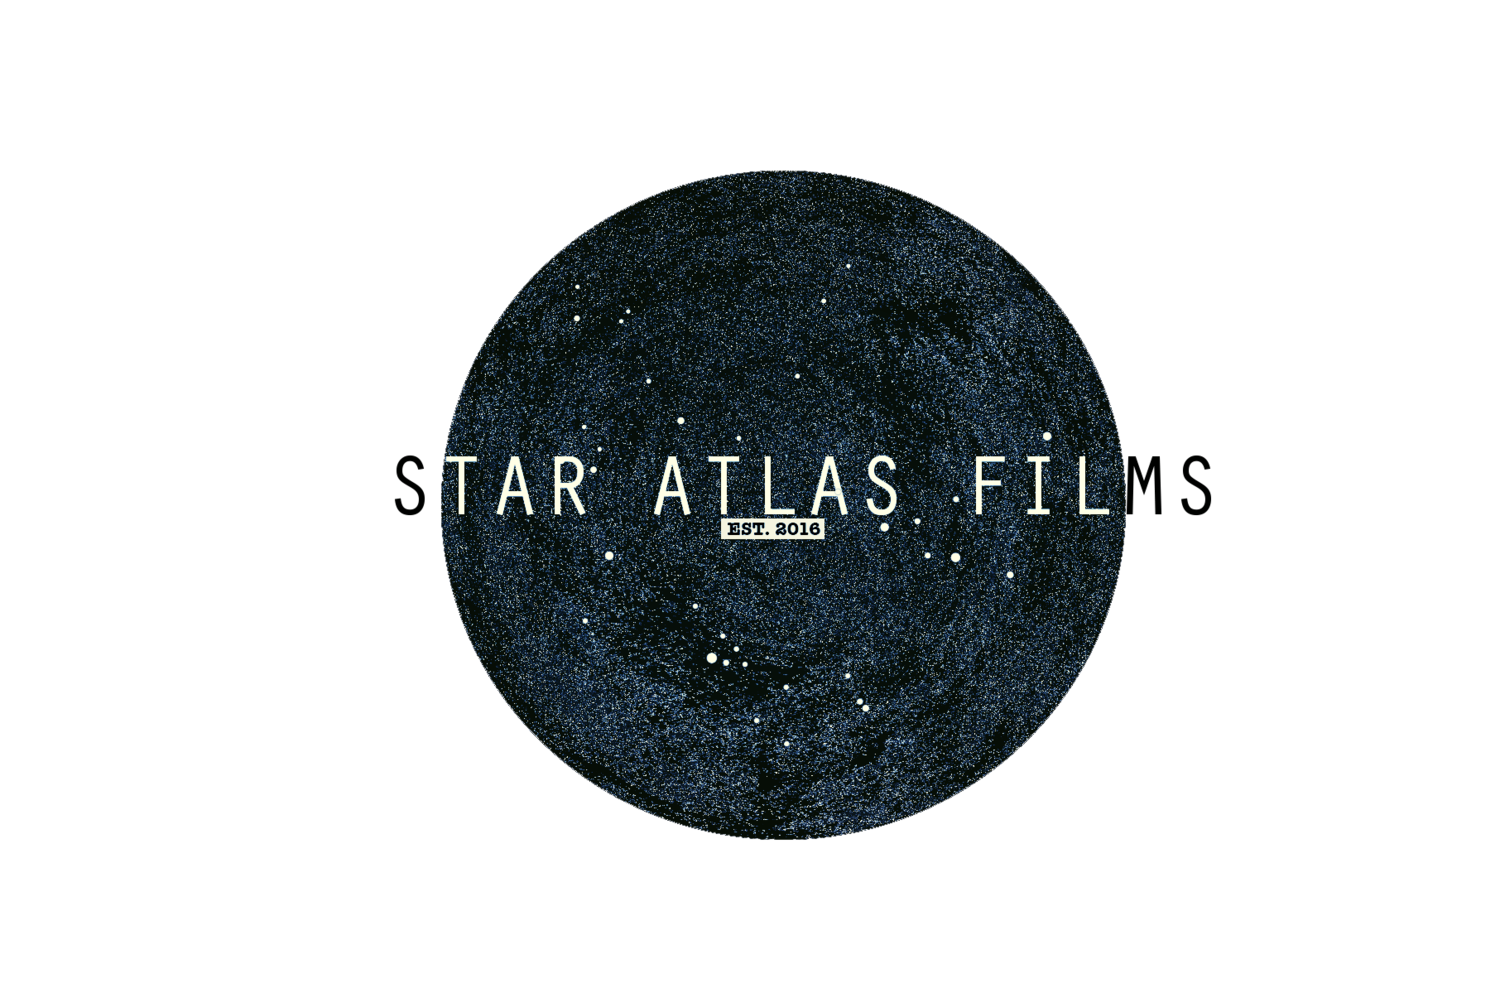 Star Atlas Films